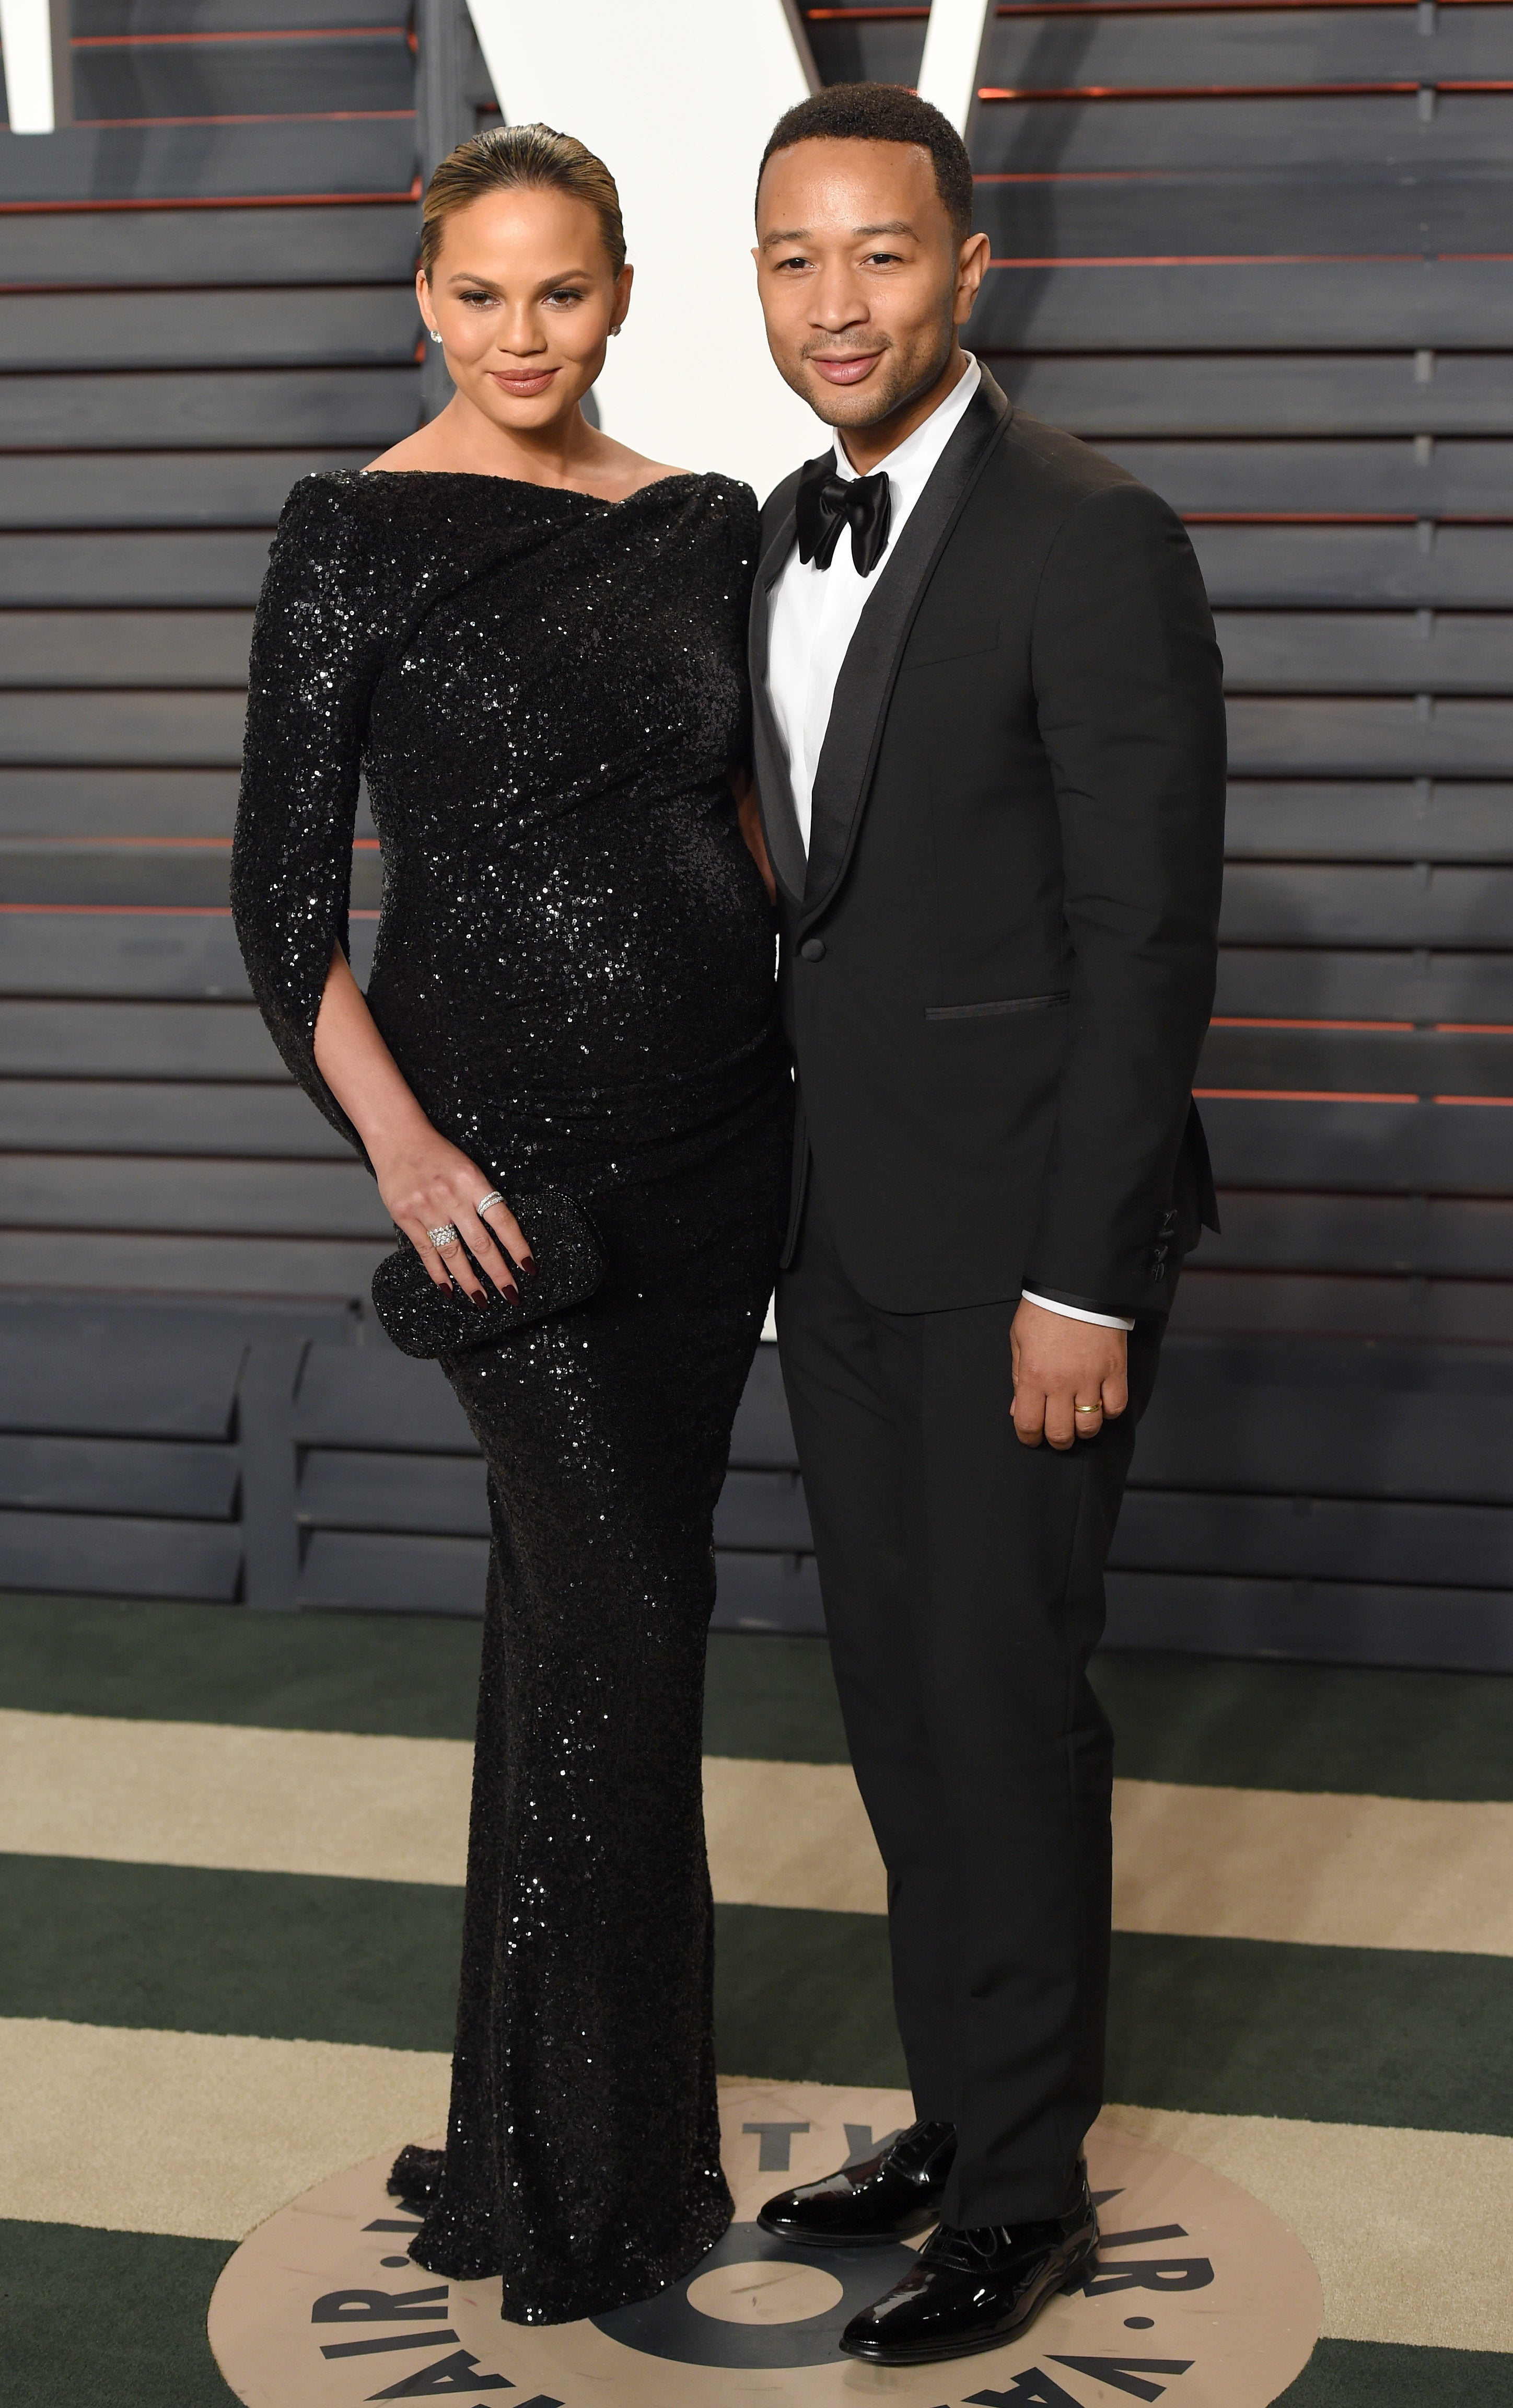 Chrissy Teigen and John Legend Have Obama's Seal Of Approval on Baby Name